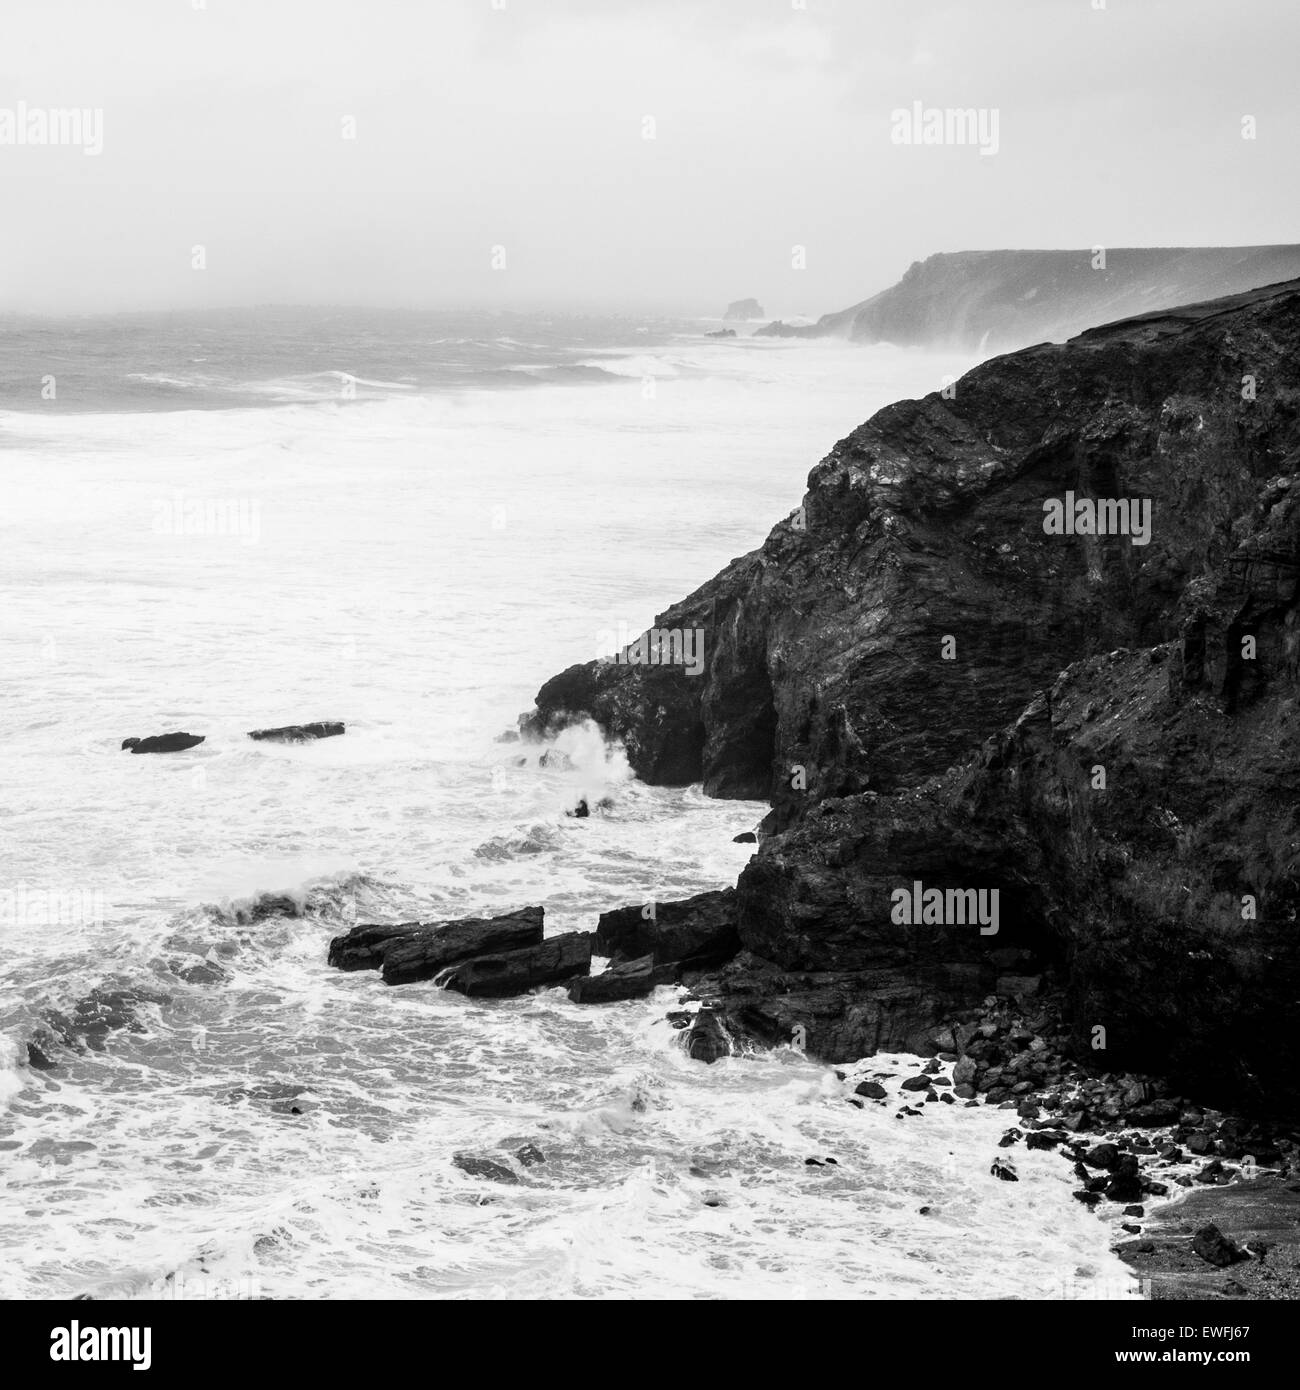 Cliffs on the North Coast of Cornwall as the storm 'Hercules' nears it's peak. - Stock Image